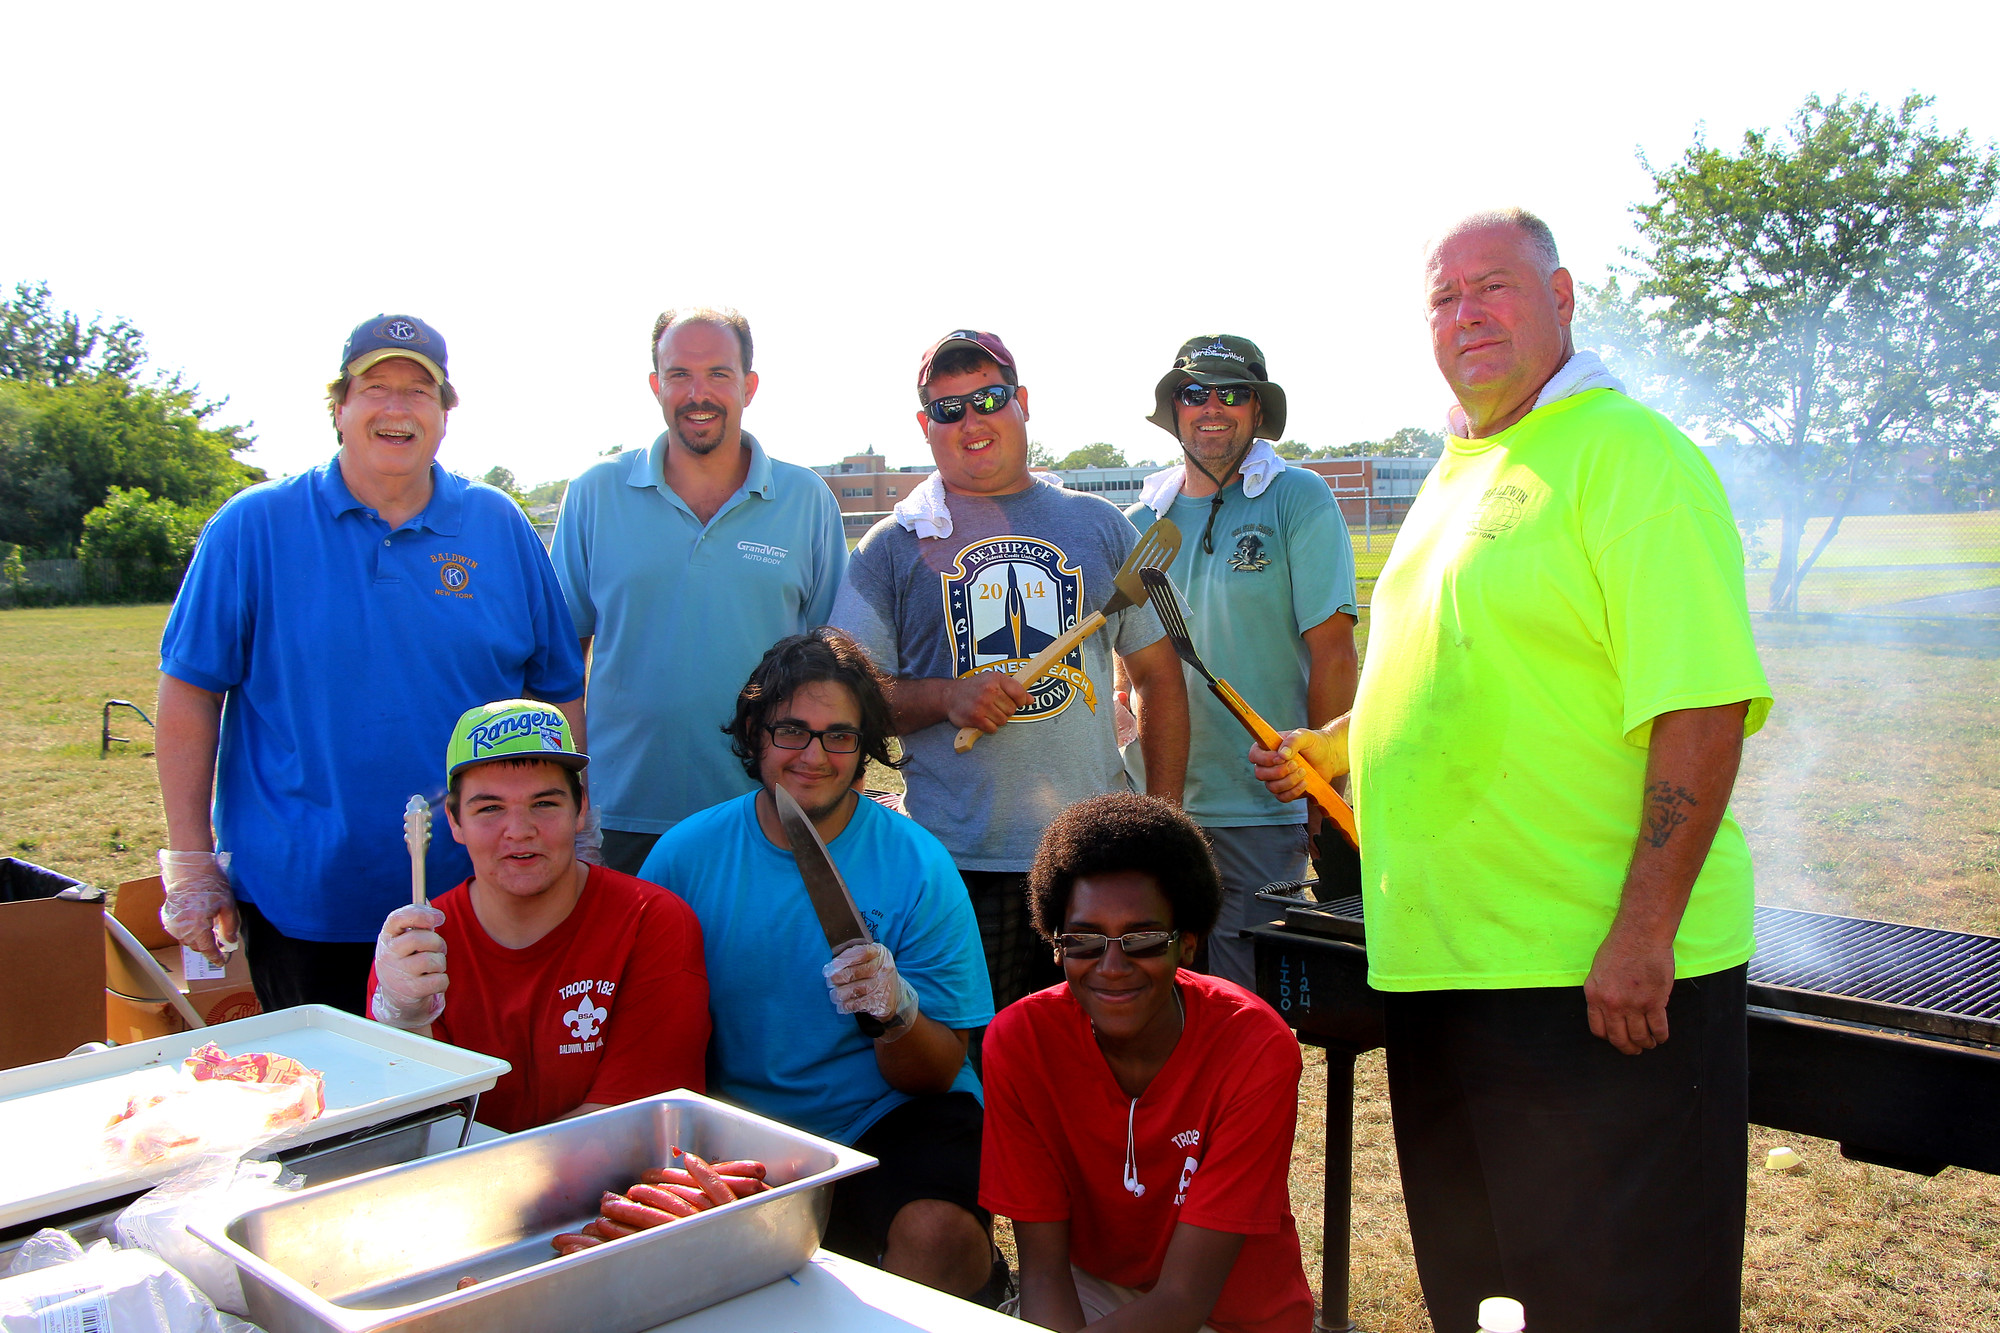 Volunteers served up more than 1,800 hot dogs and hamburgers during the Baldwin Chamber of Commerce Picnic in Baldwin Park. Back row from left were Tony Tarantino, Paul Lizio, Peter Ortiz, Bret Rose and Ralph Rose. From row from left were Brandon Louis, Gabriel Turnan and Kevin Meyers.